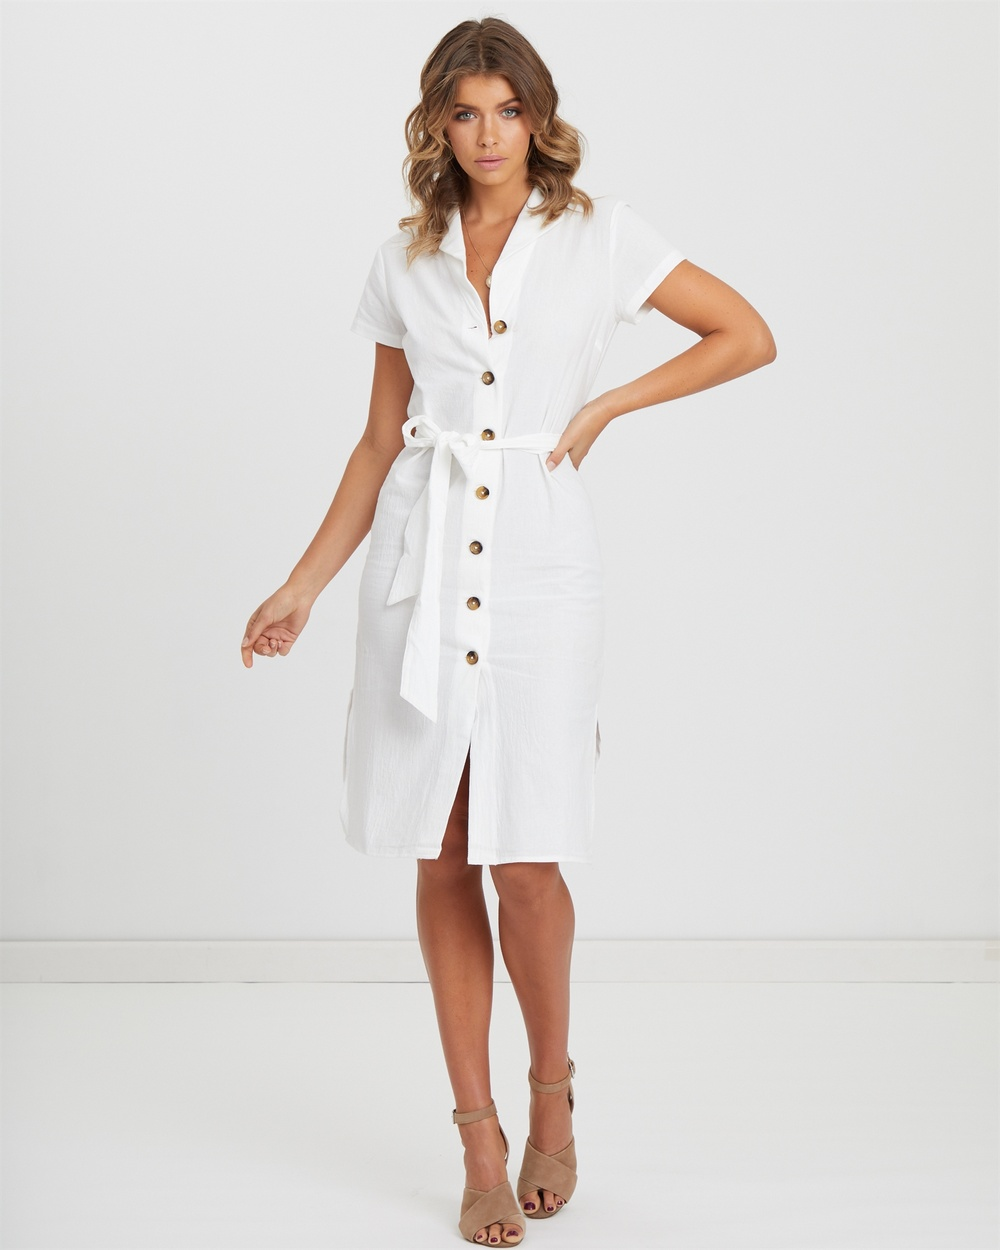 Photo of Atmos & Here White Button Front Midi Dress - beautiful dress from Atmos & Here online